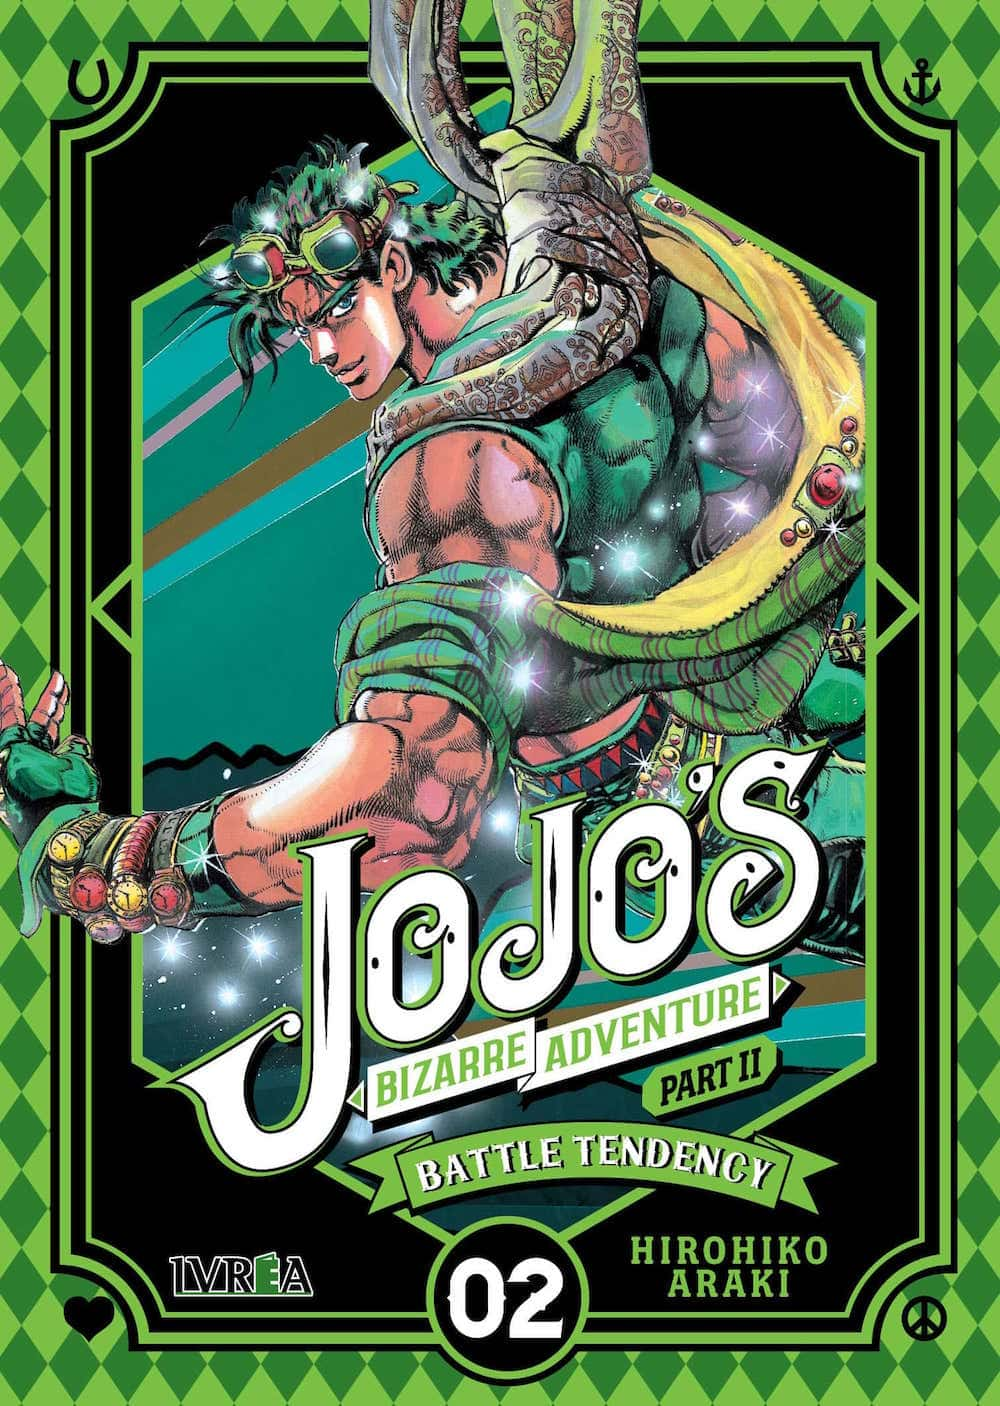 Jojo's Battle Tendency 2 Ivrea